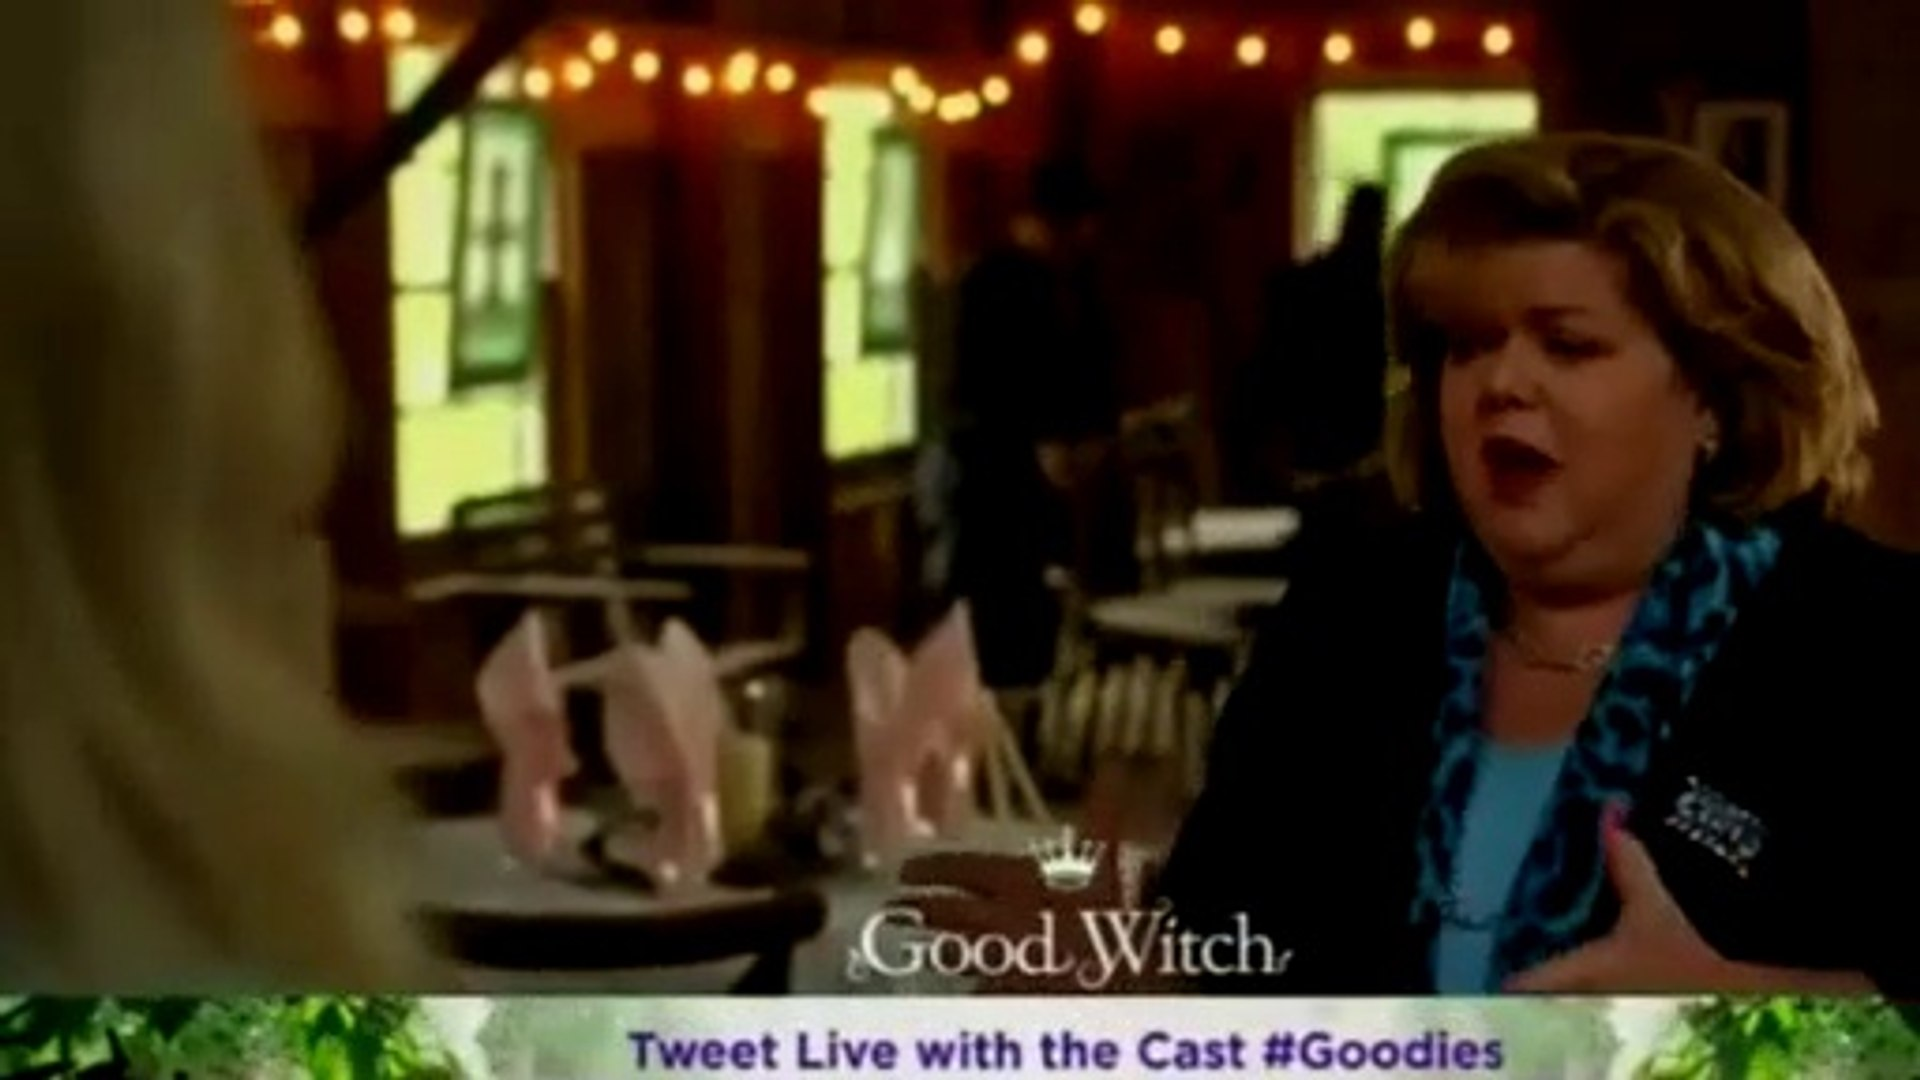 Good Witch Season 5 Episode 4 - The Prince Good Witch - 6 23 2019